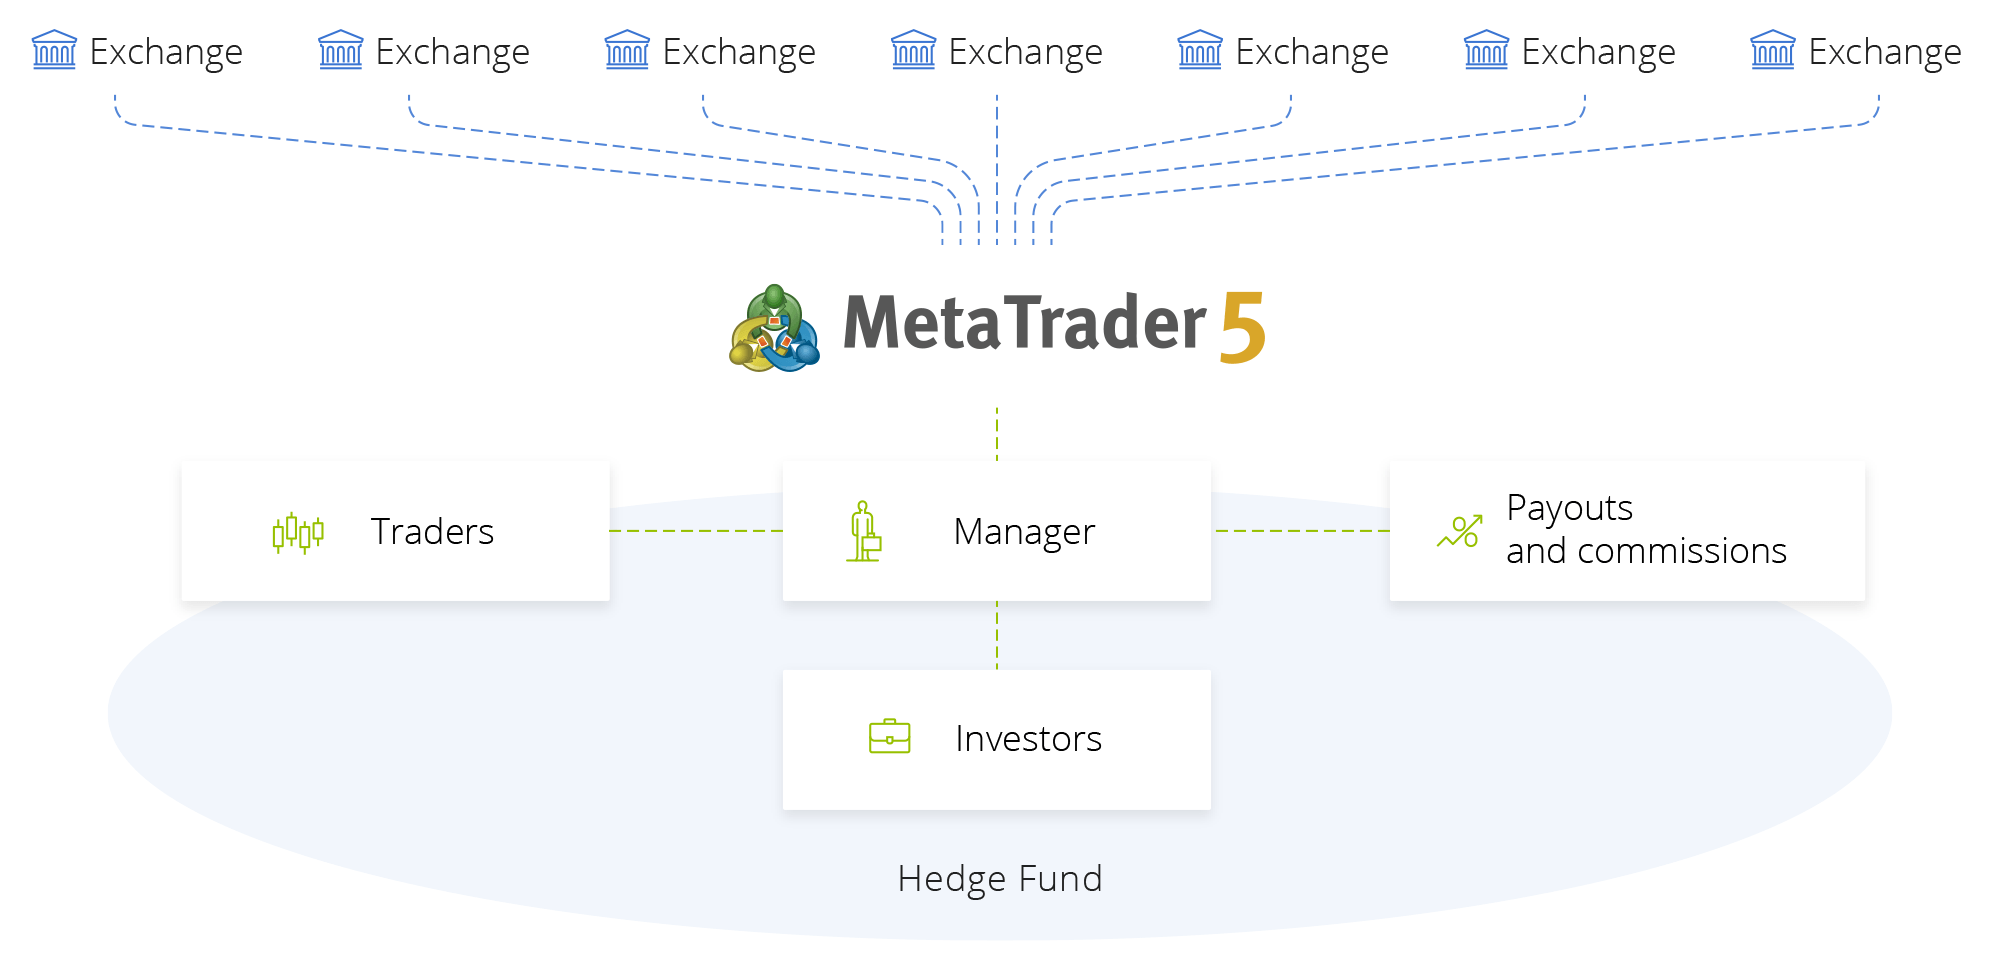 MetaTrader 5 is an exchange terminal with the integrated risk management and analytics